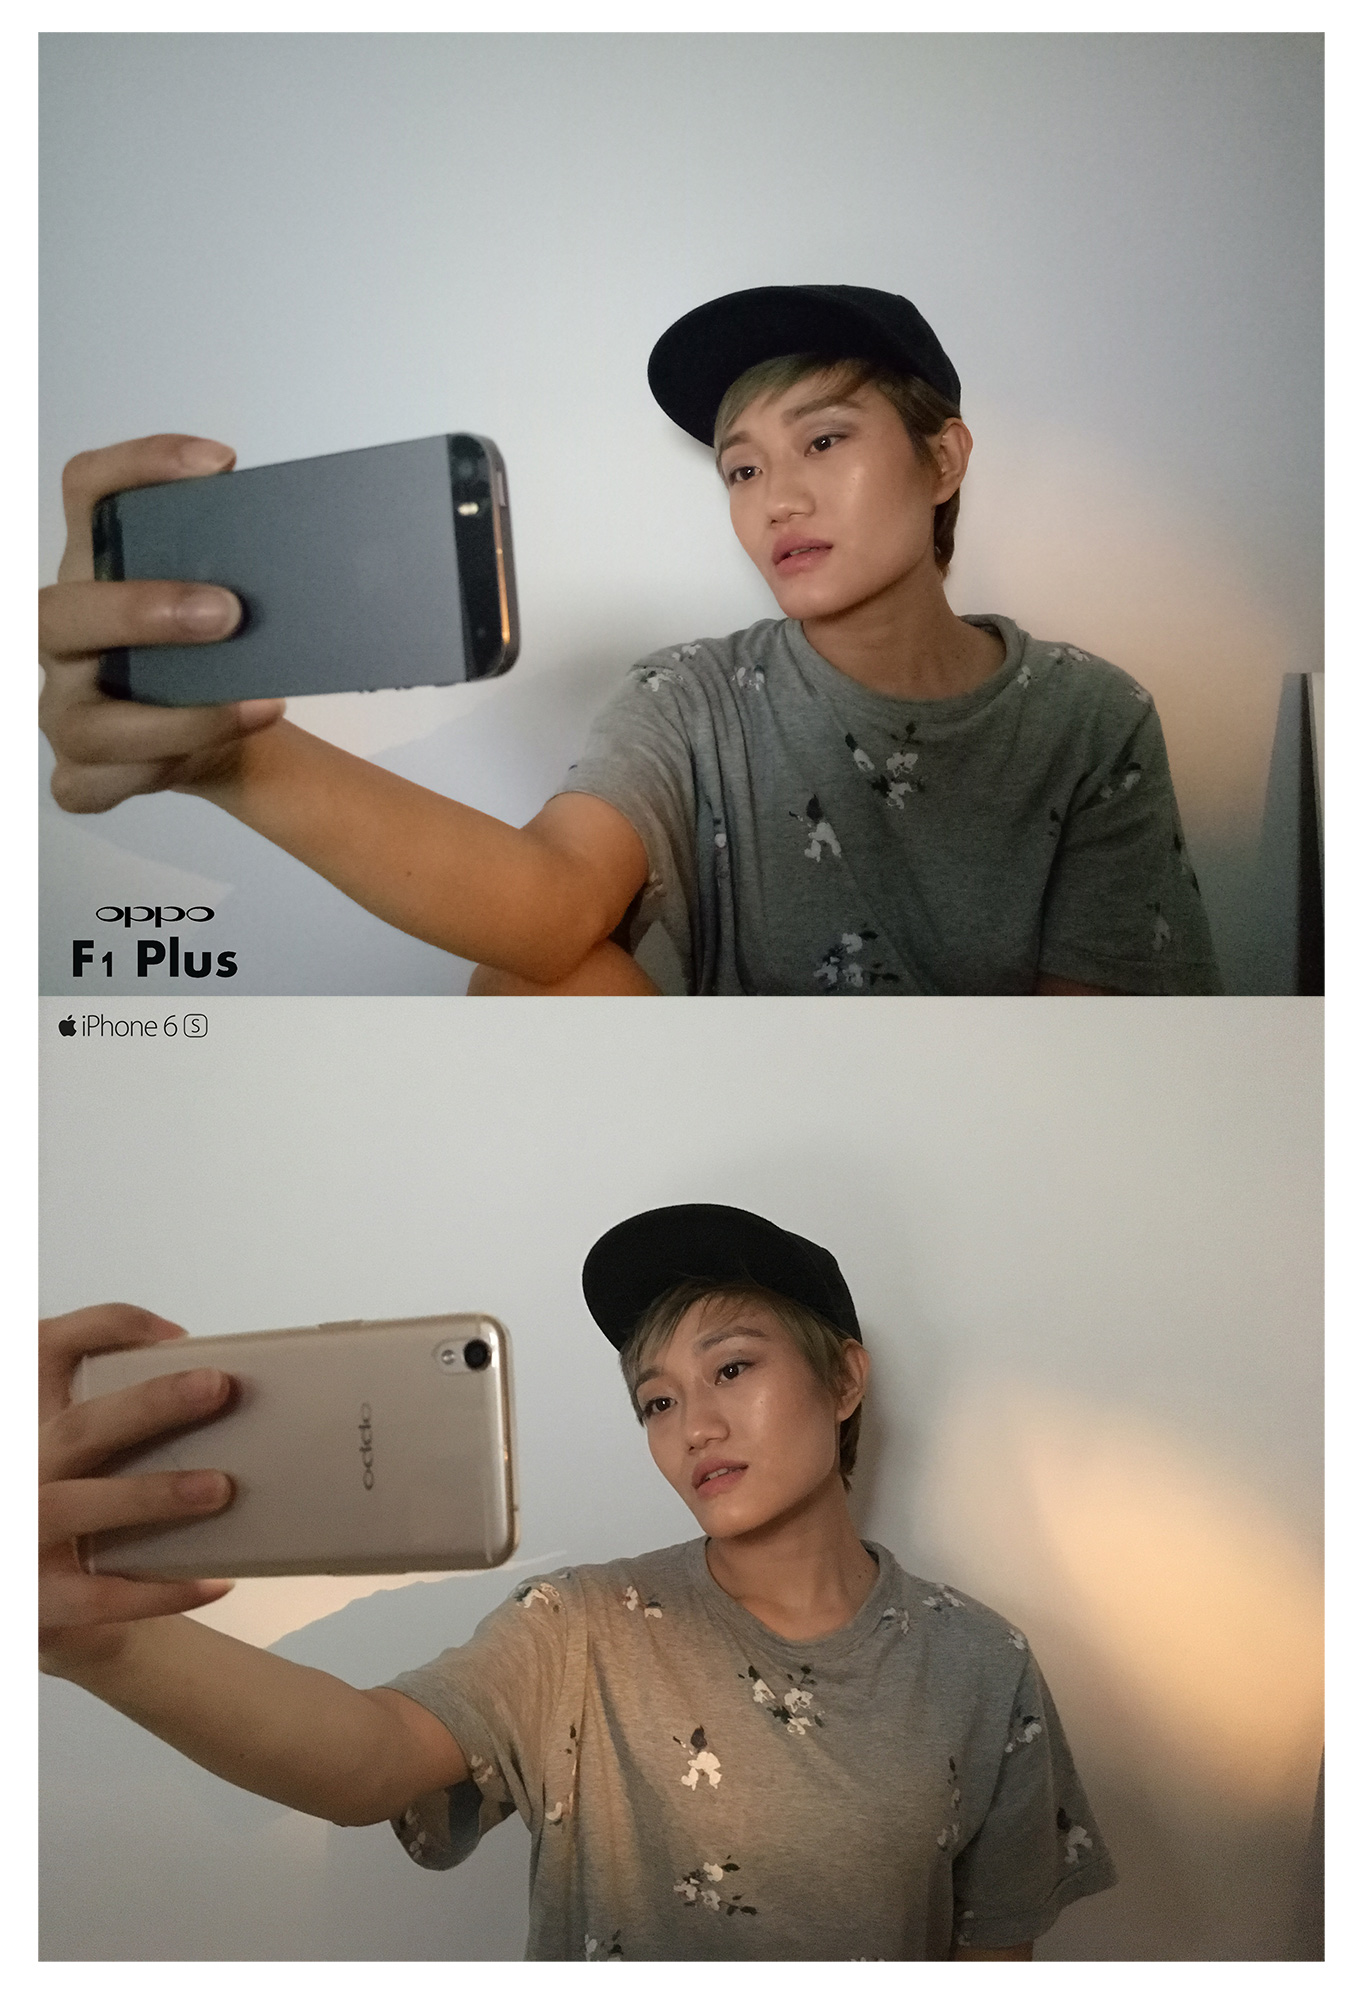 OPPO F1 Plus Vs iPhone 6s-Rear-Camera-Low-Light